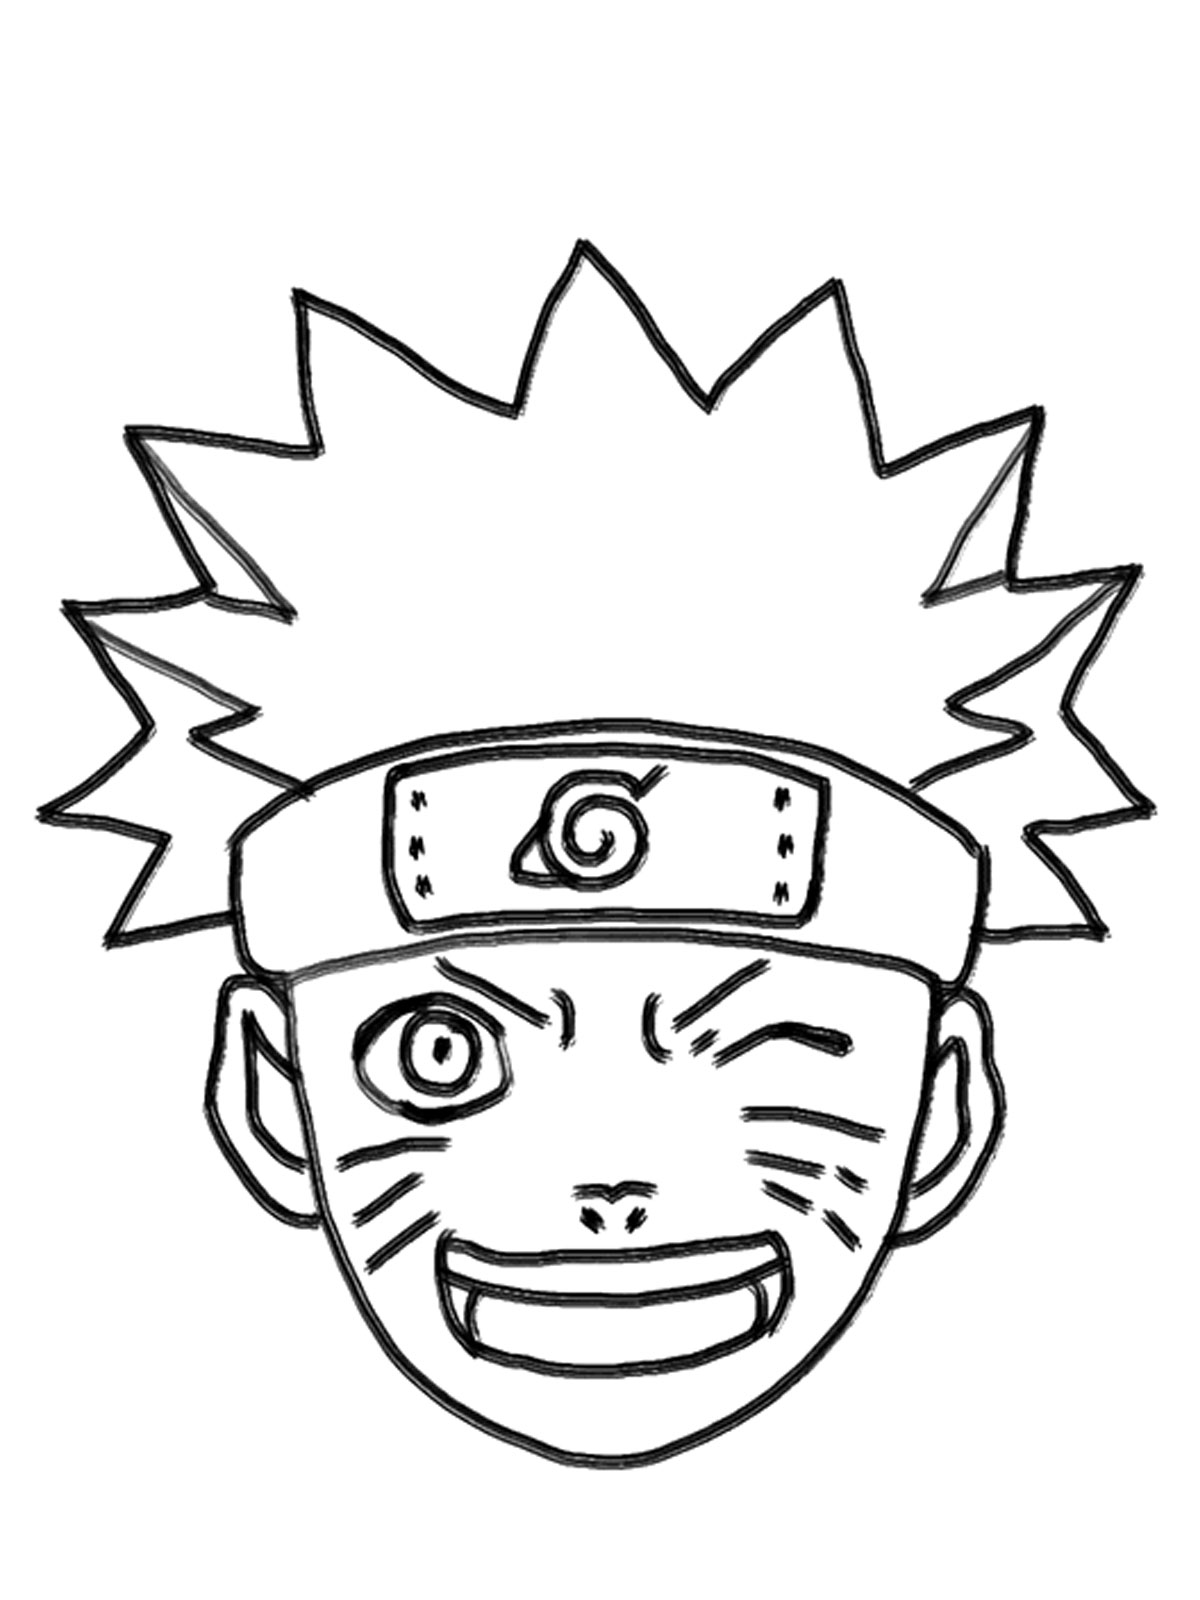 Naruto Coloring Pages Printable on sasuke cards